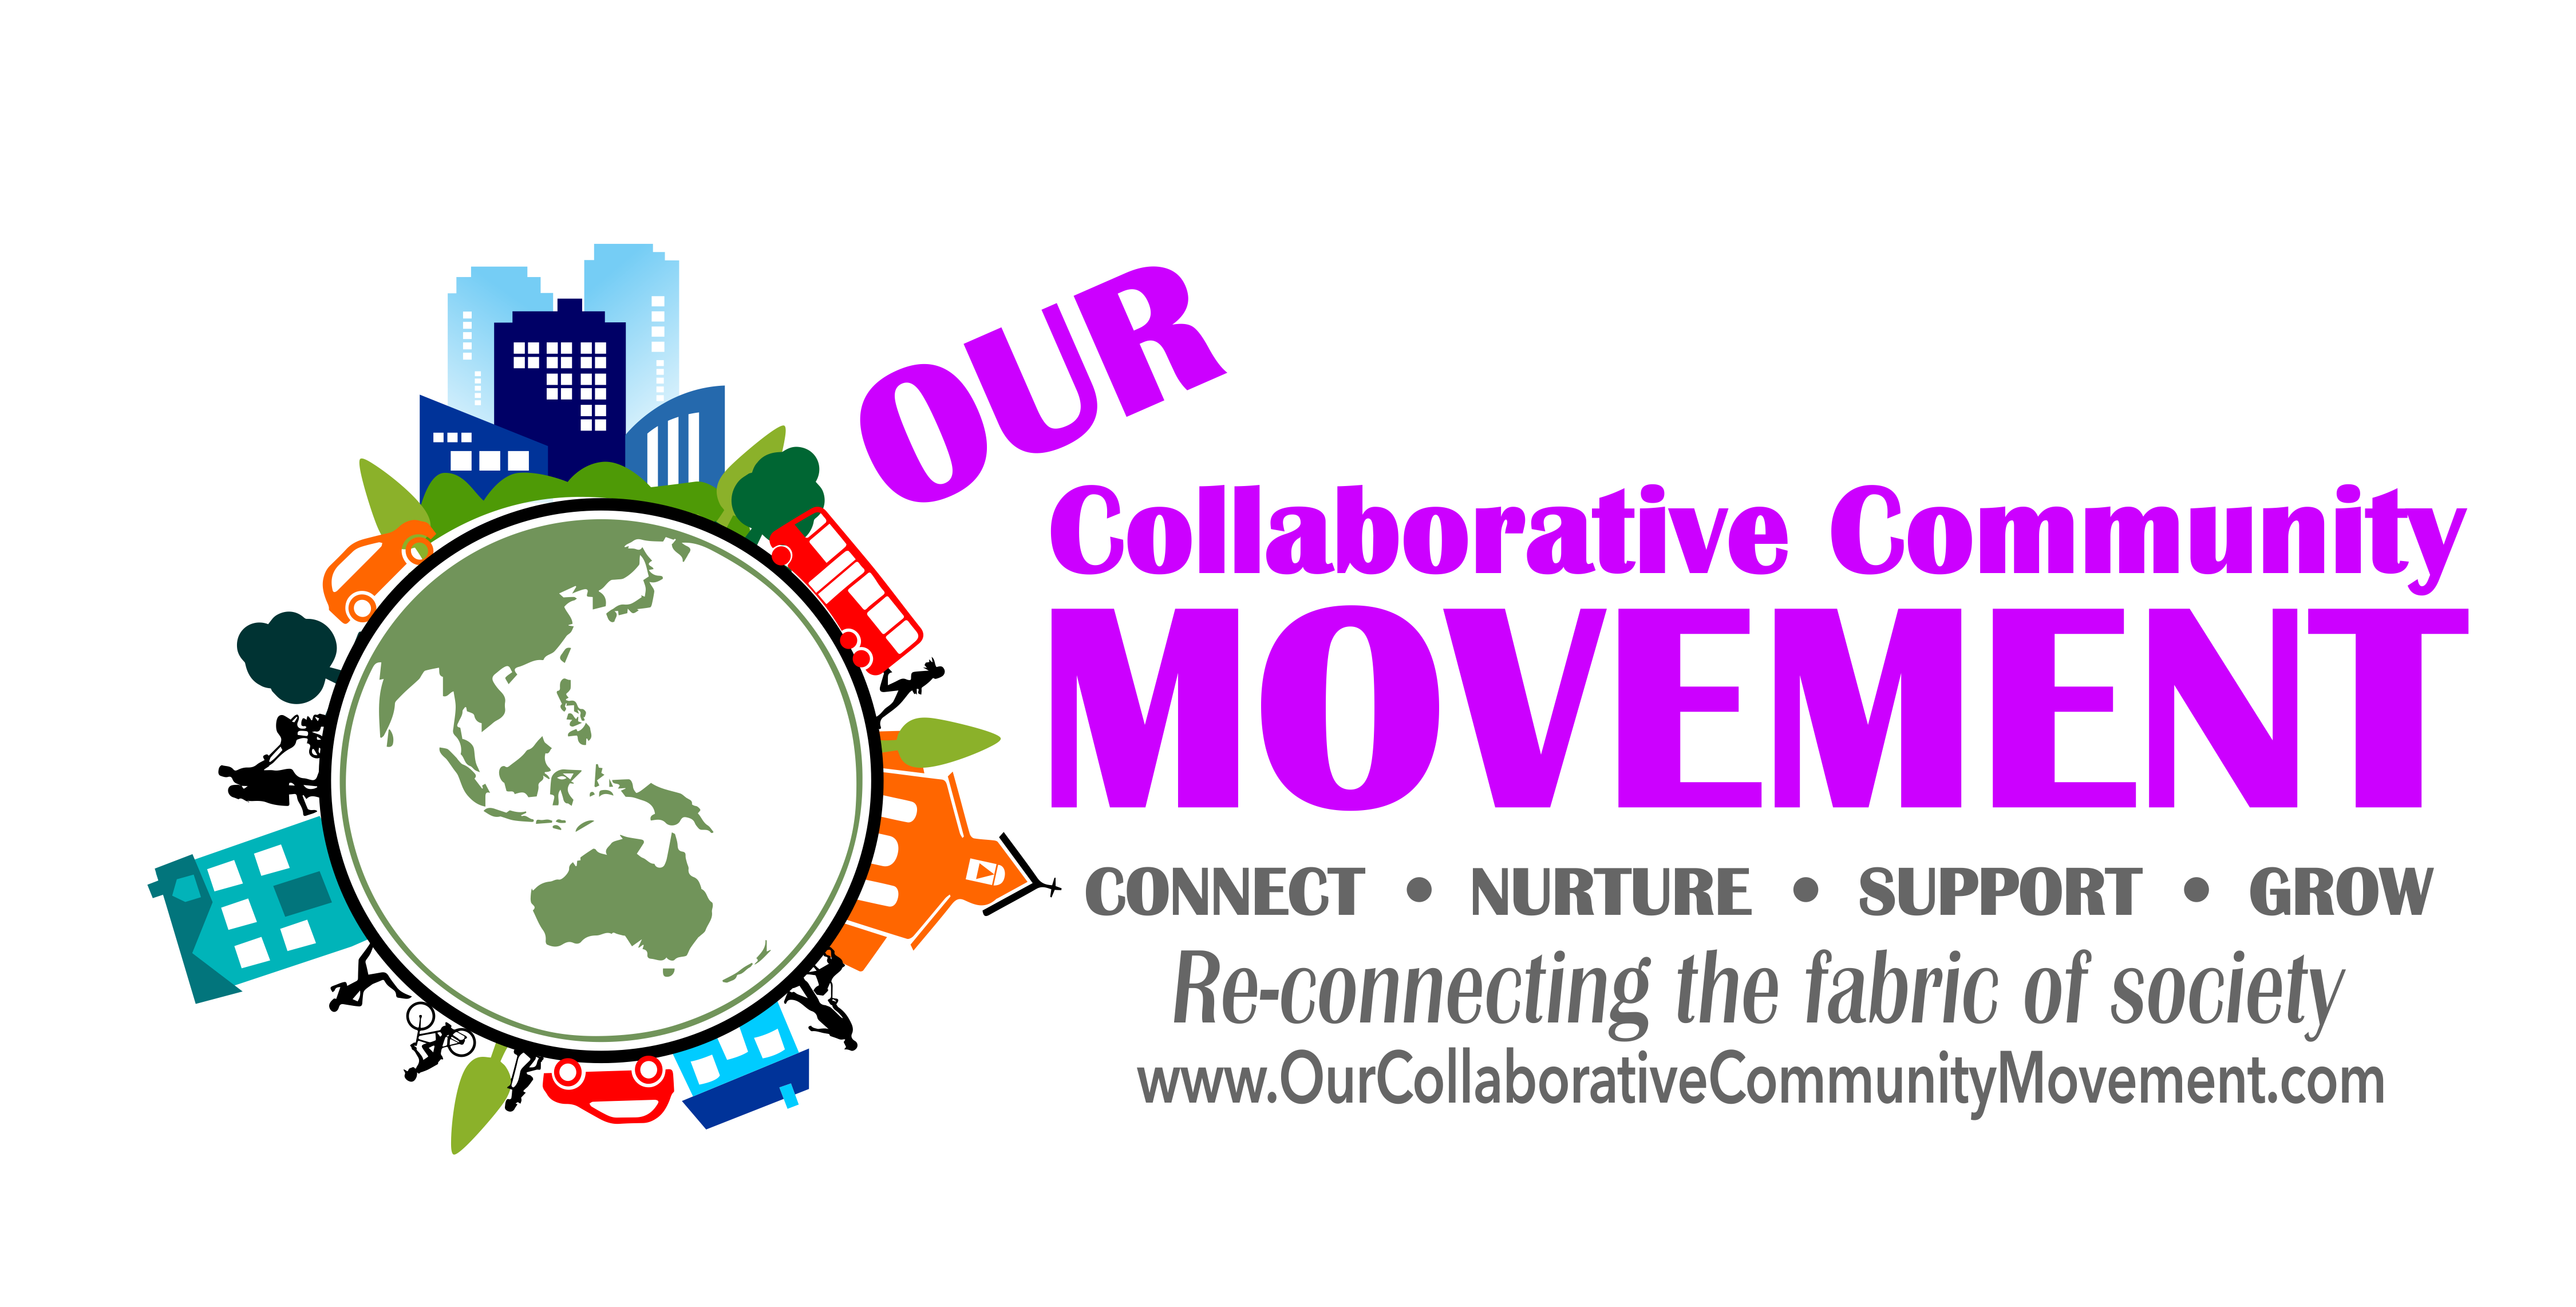 Our Collaborative Community Movement